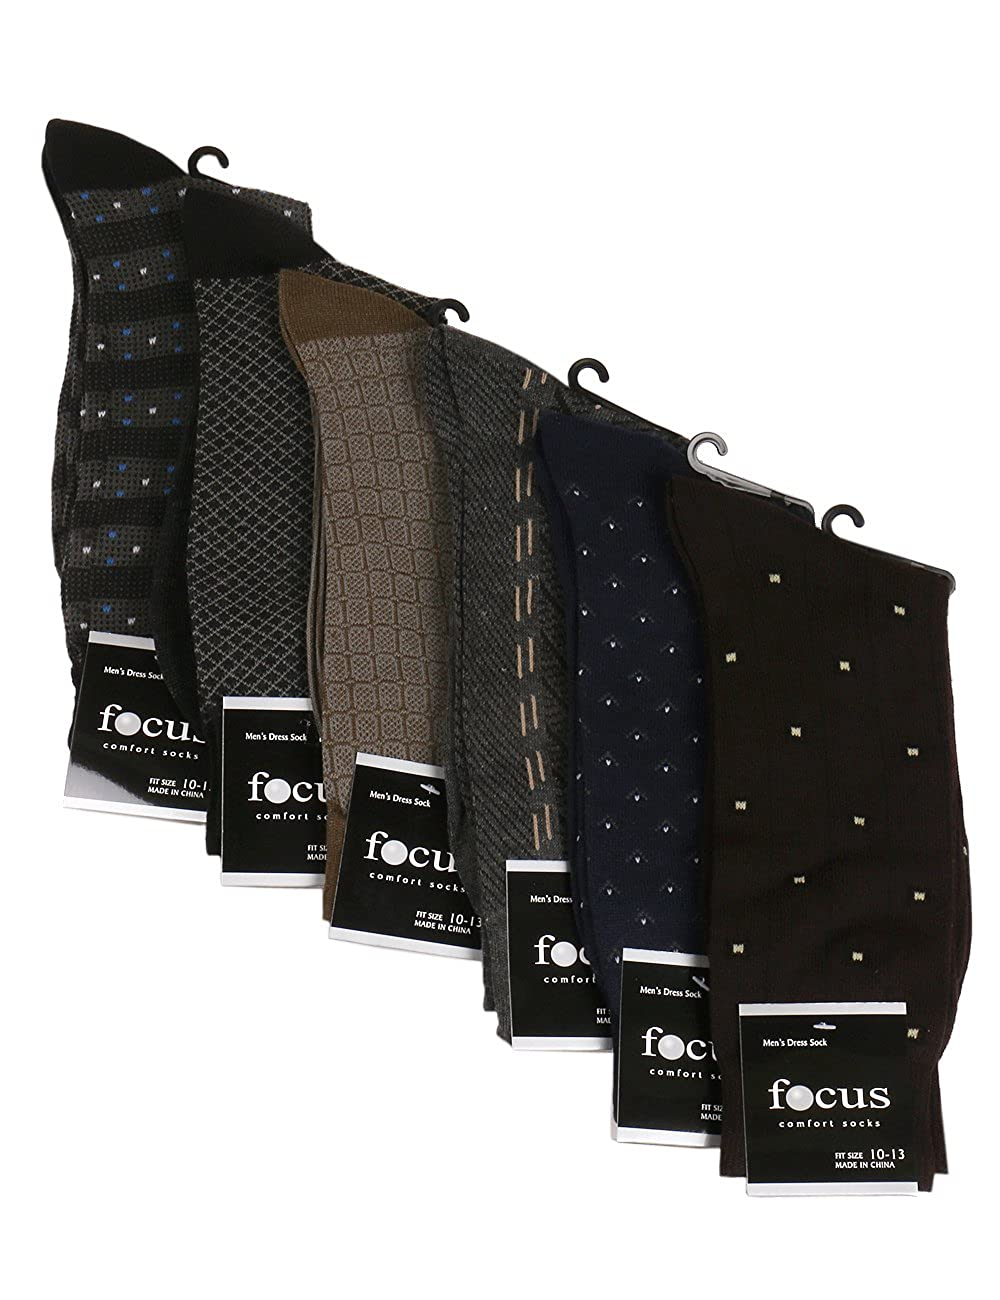 Men's Dress Socks 6 Pack- Comfort and Style. Crew length in Classic Solid Colors, All Black, Design, or Argyle. FC60